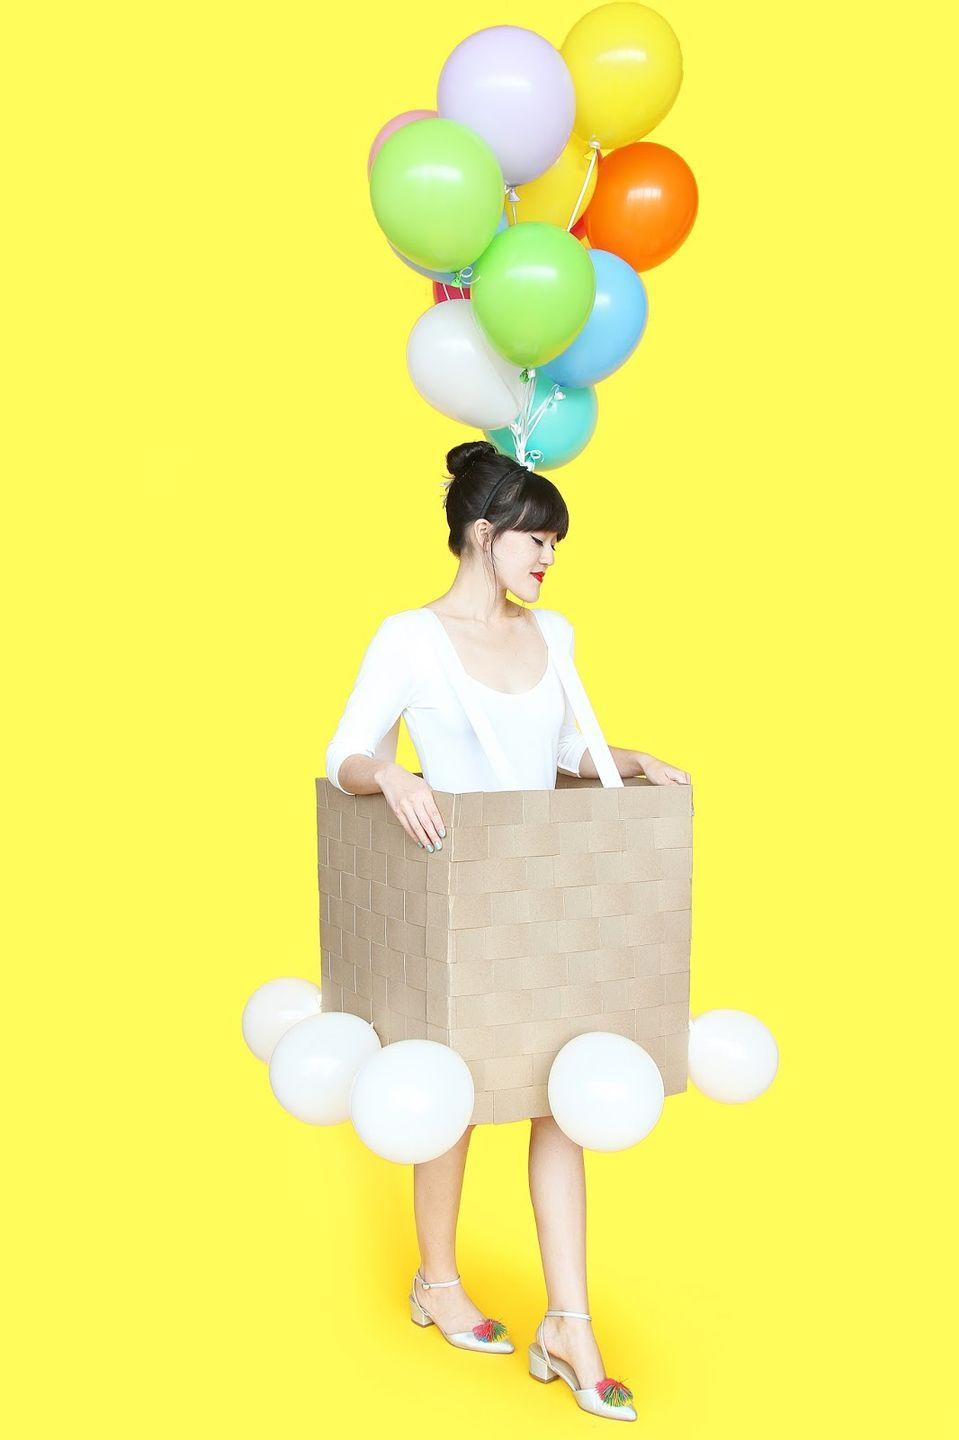 """<p>How creative is this? Your tween can fly up, up, and away with this adorable hot air balloon costume, made from strips of chipboard. </p><p><strong>Get the tutorial at</strong> <strong><a href=""""http://www.awwsam.com/2015/09/diy-hot-air-balloon-halloween-costume.html"""" rel=""""nofollow noopener"""" target=""""_blank"""" data-ylk=""""slk:Aww Sam"""" class=""""link rapid-noclick-resp"""">Aww Sam</a>. </strong></p><p><a class=""""link rapid-noclick-resp"""" href=""""https://www.amazon.com/Chipboard-Sheets-inch-Scrapbooking-MagicWater/dp/B07BY971FK/ref=redir_mobile_desktop?ie=UTF8&aaxitk=ZZ0eGu.yUxRpax3al2tj6w&hsa_cr_id=6686318920201&ref_=sbx_be_s_sparkle_mcd_asin_0&tag=syn-yahoo-20&ascsubtag=%5Bartid%7C10050.g.21603260%5Bsrc%7Cyahoo-us"""" rel=""""nofollow noopener"""" target=""""_blank"""" data-ylk=""""slk:SHOP CHIPBOARD"""">SHOP CHIPBOARD</a></p>"""